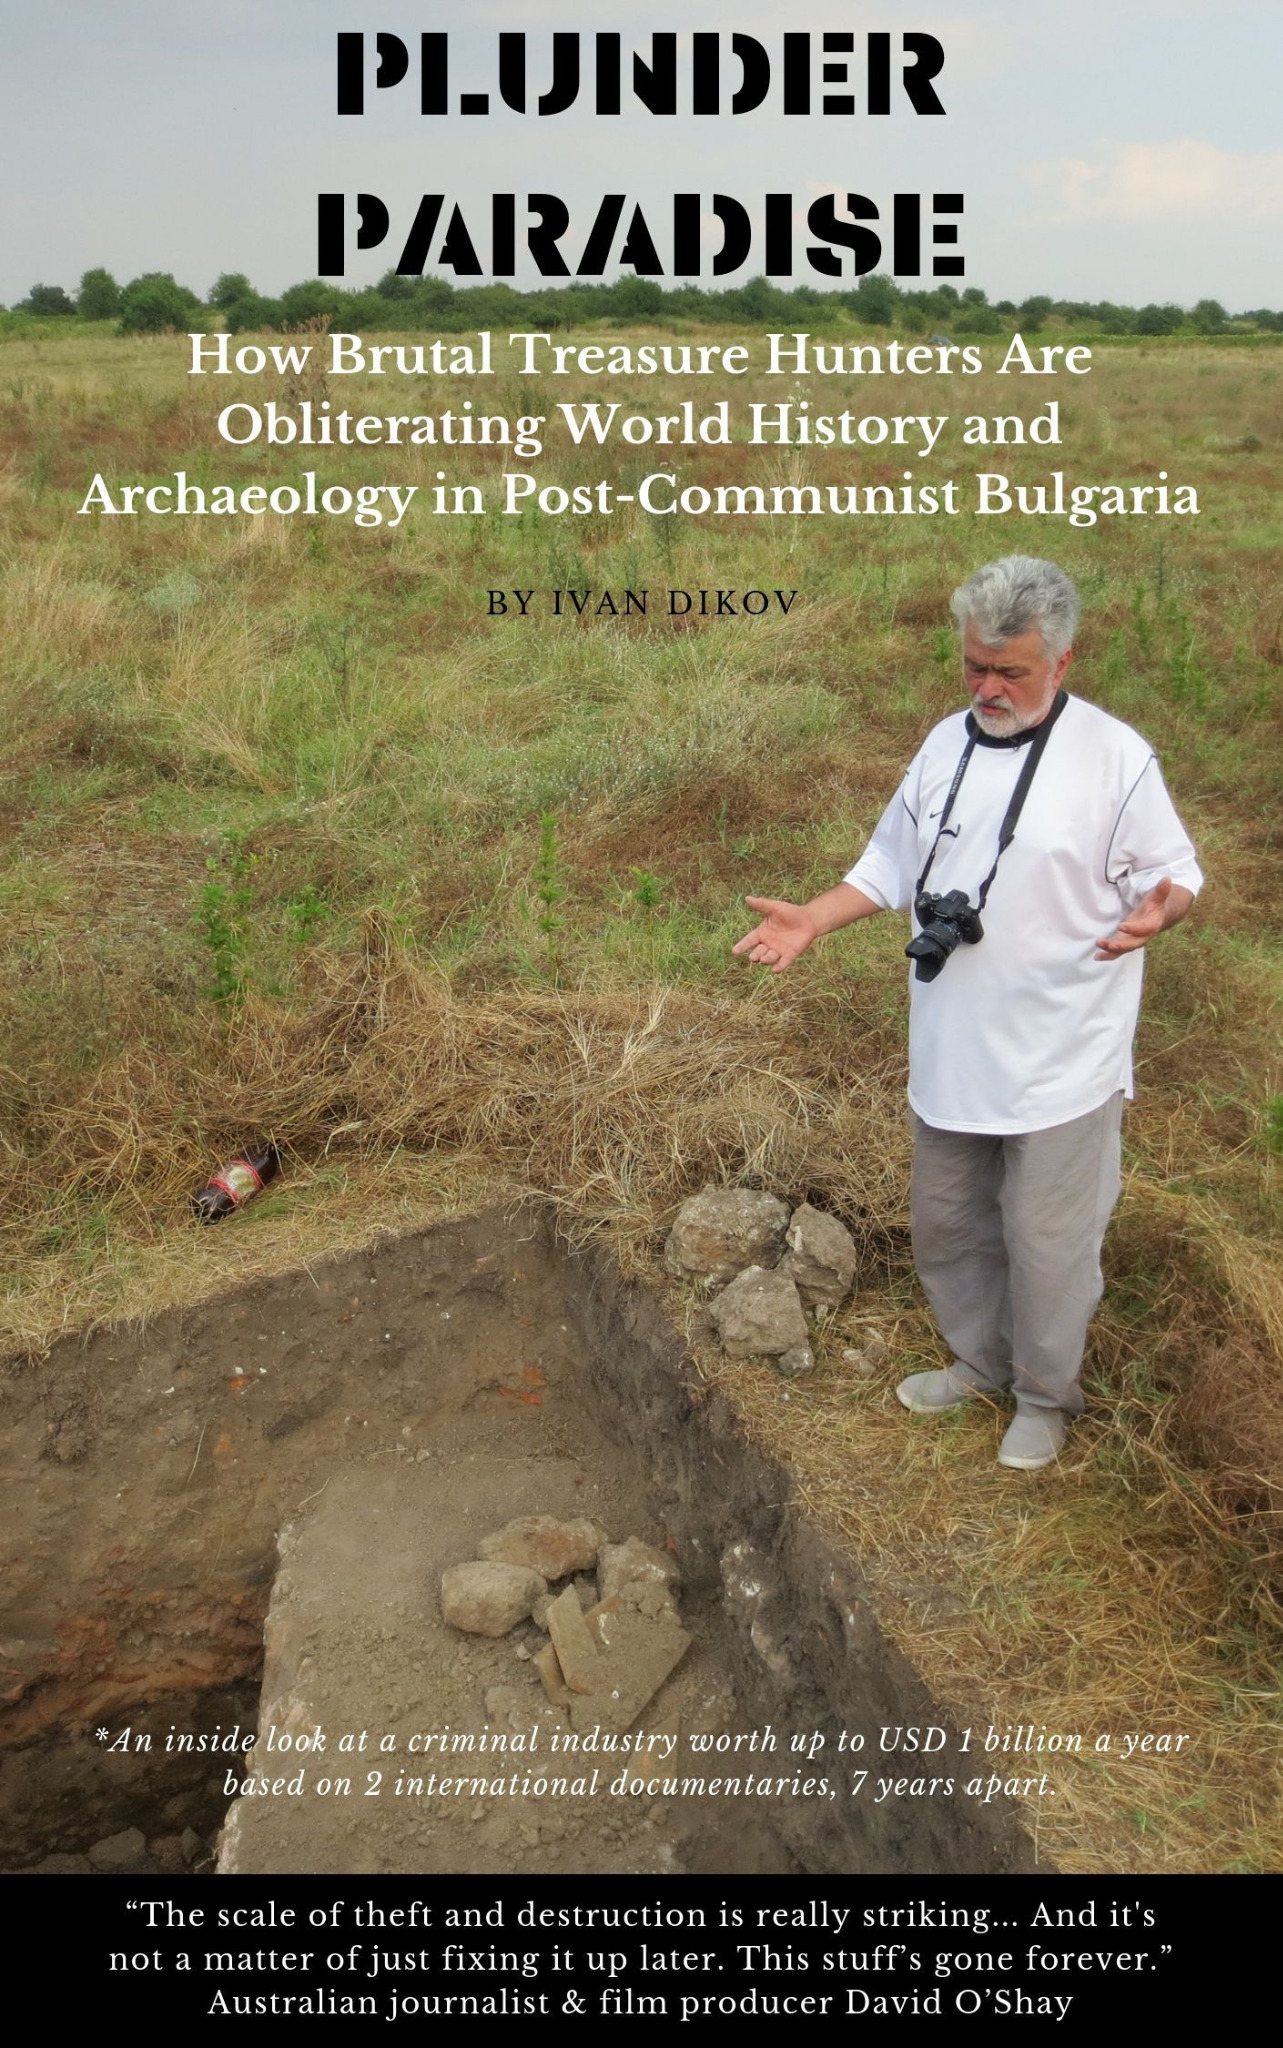 How Brutal Treasure Hunters Obliterate World History & Archaeology in Post-Communist Bulgaria